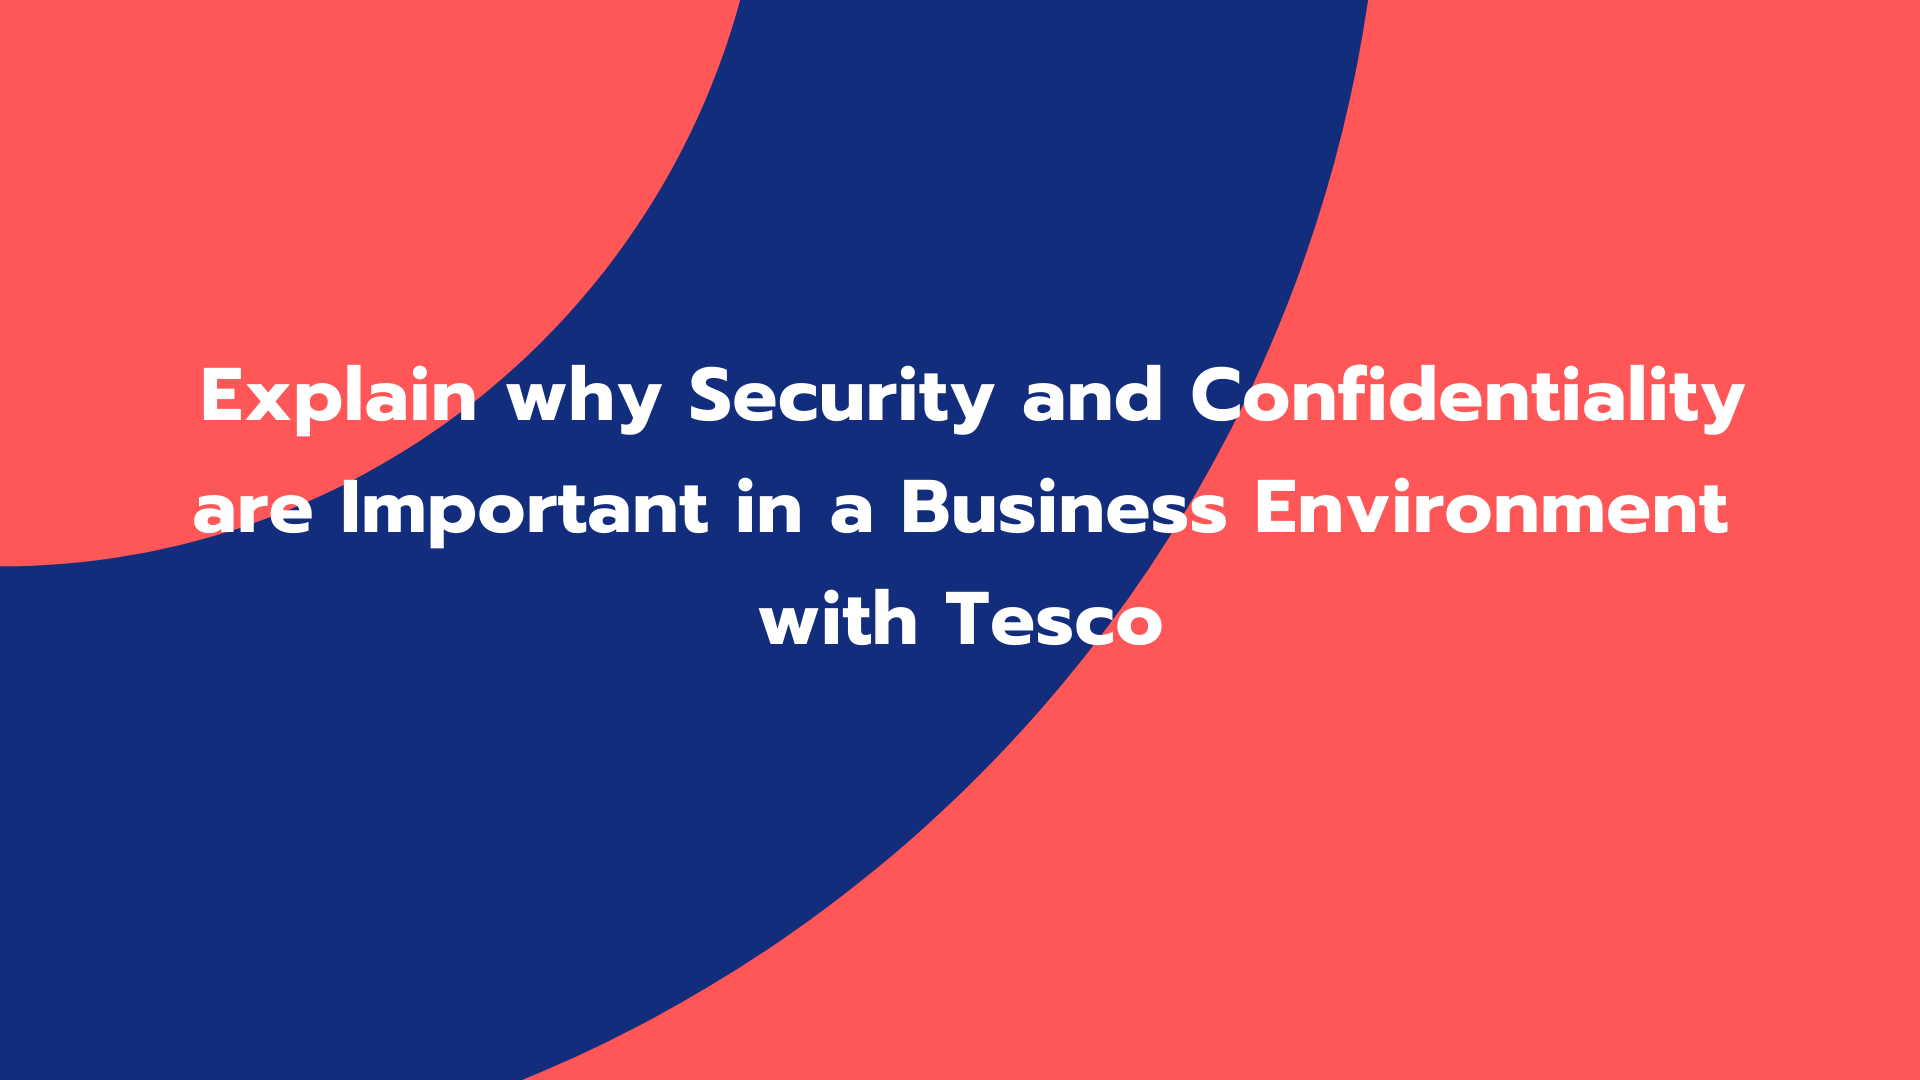 Explain why Security and Confidentiality are Important in a Business Environment with Tesco